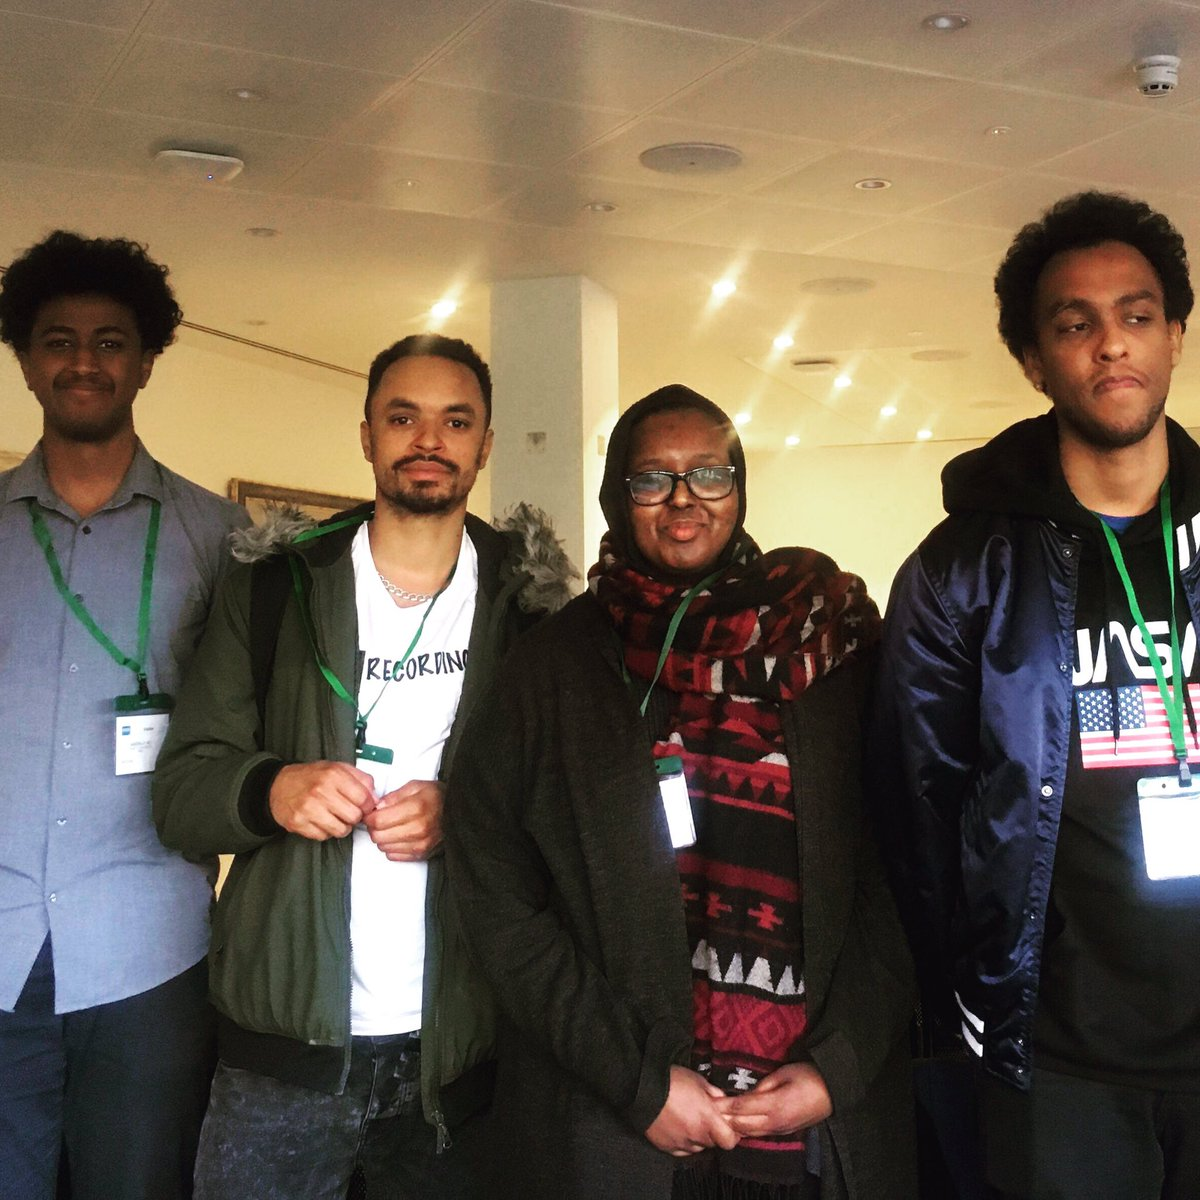 #MondayMotivation - Amazing to see our young people striving to to become future leaders at the BeOnBoard event last Thursday! pic.twitter.com/k7iVrxVWlT